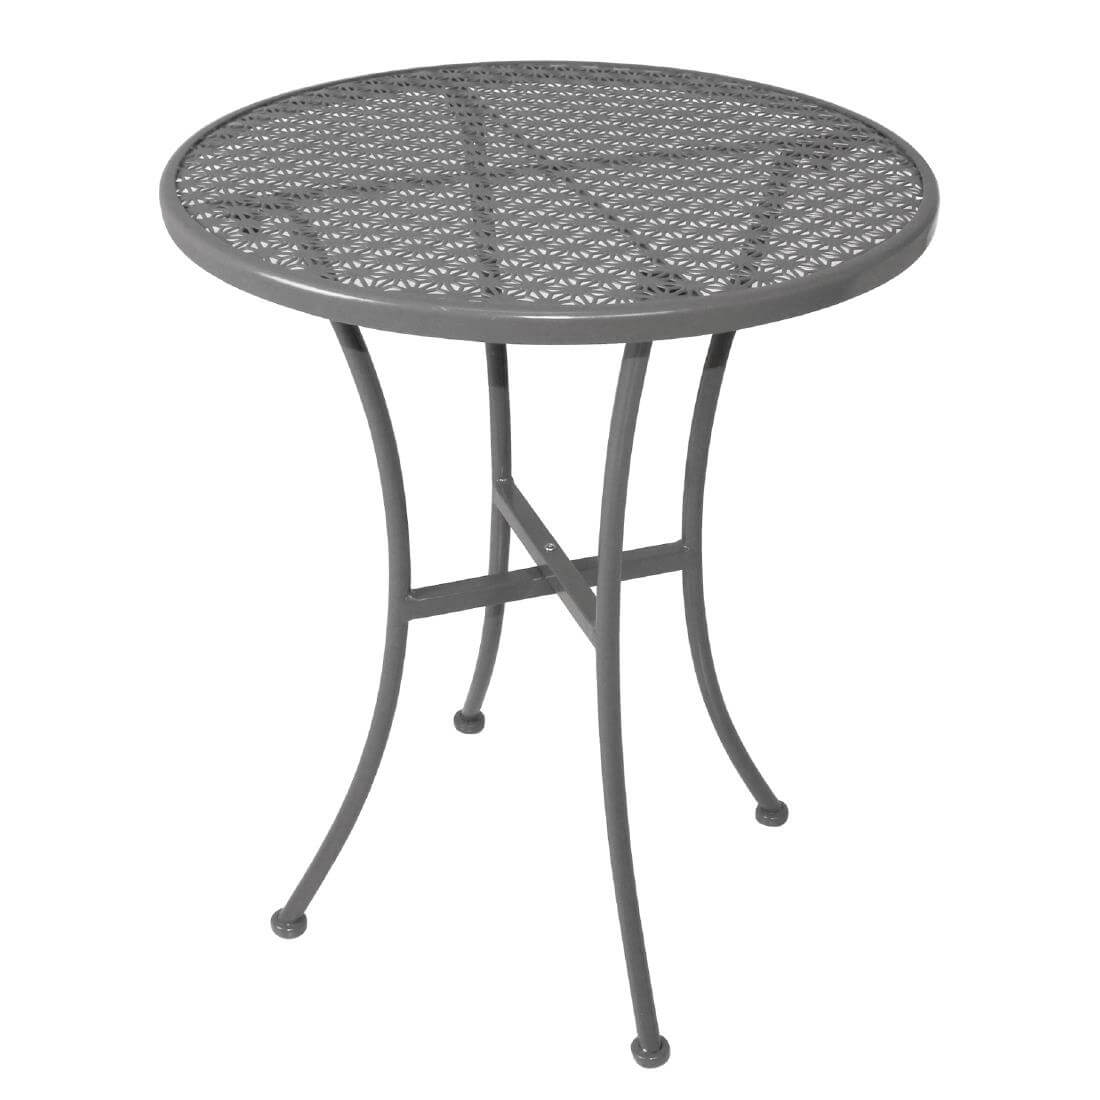 Steel Patterned Round Table - Grey